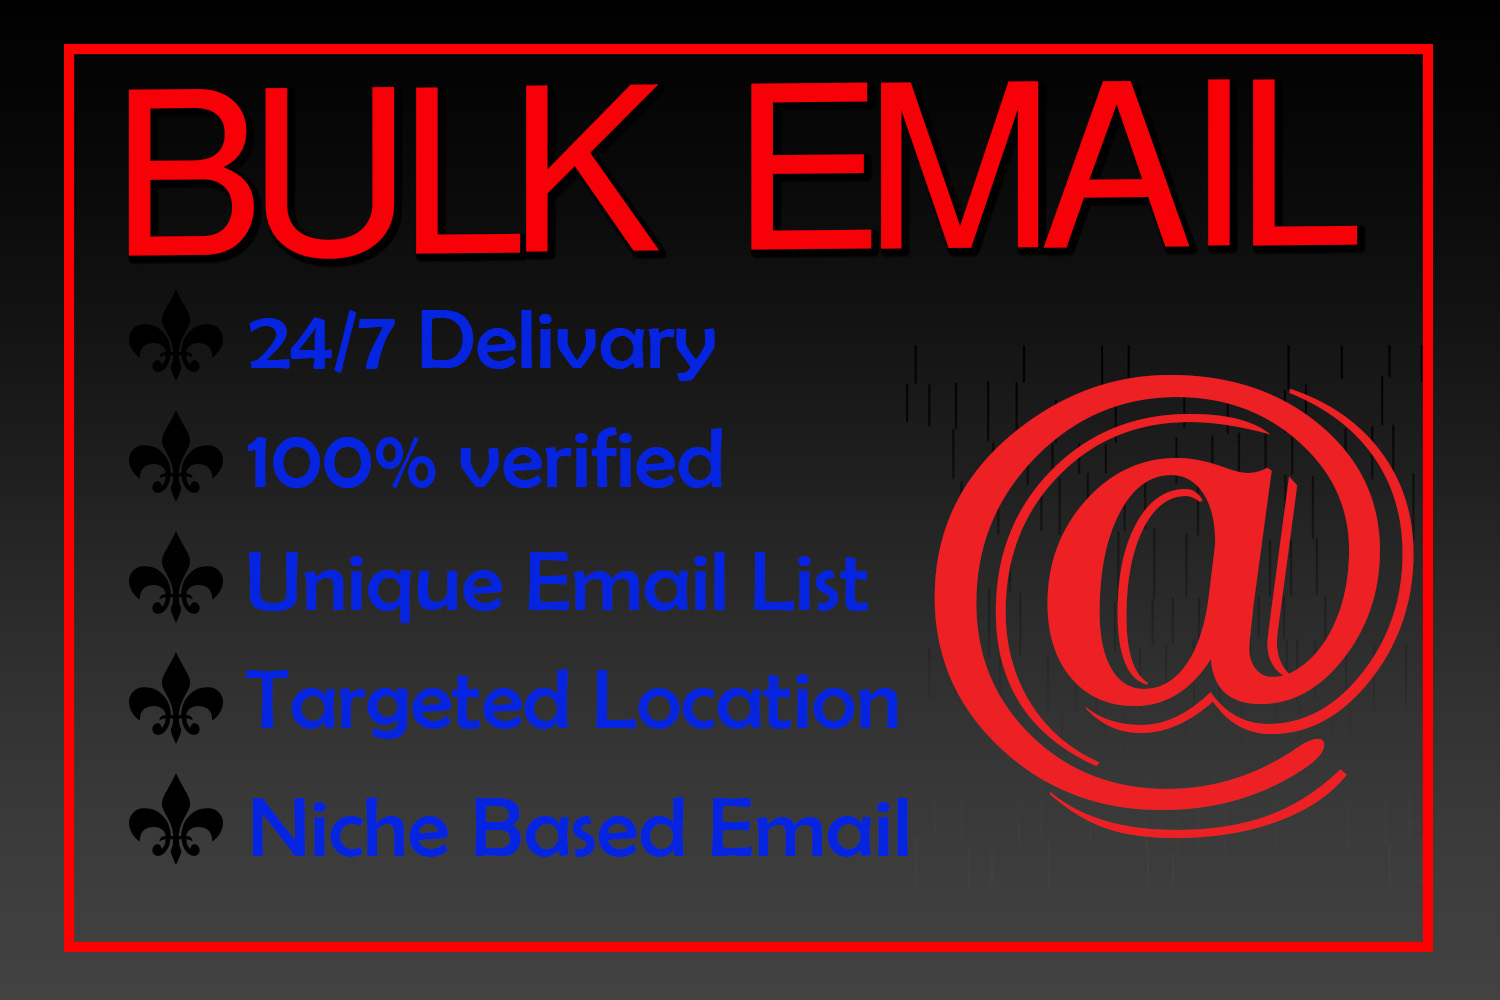 I will collect niche-targeted Bulk Email